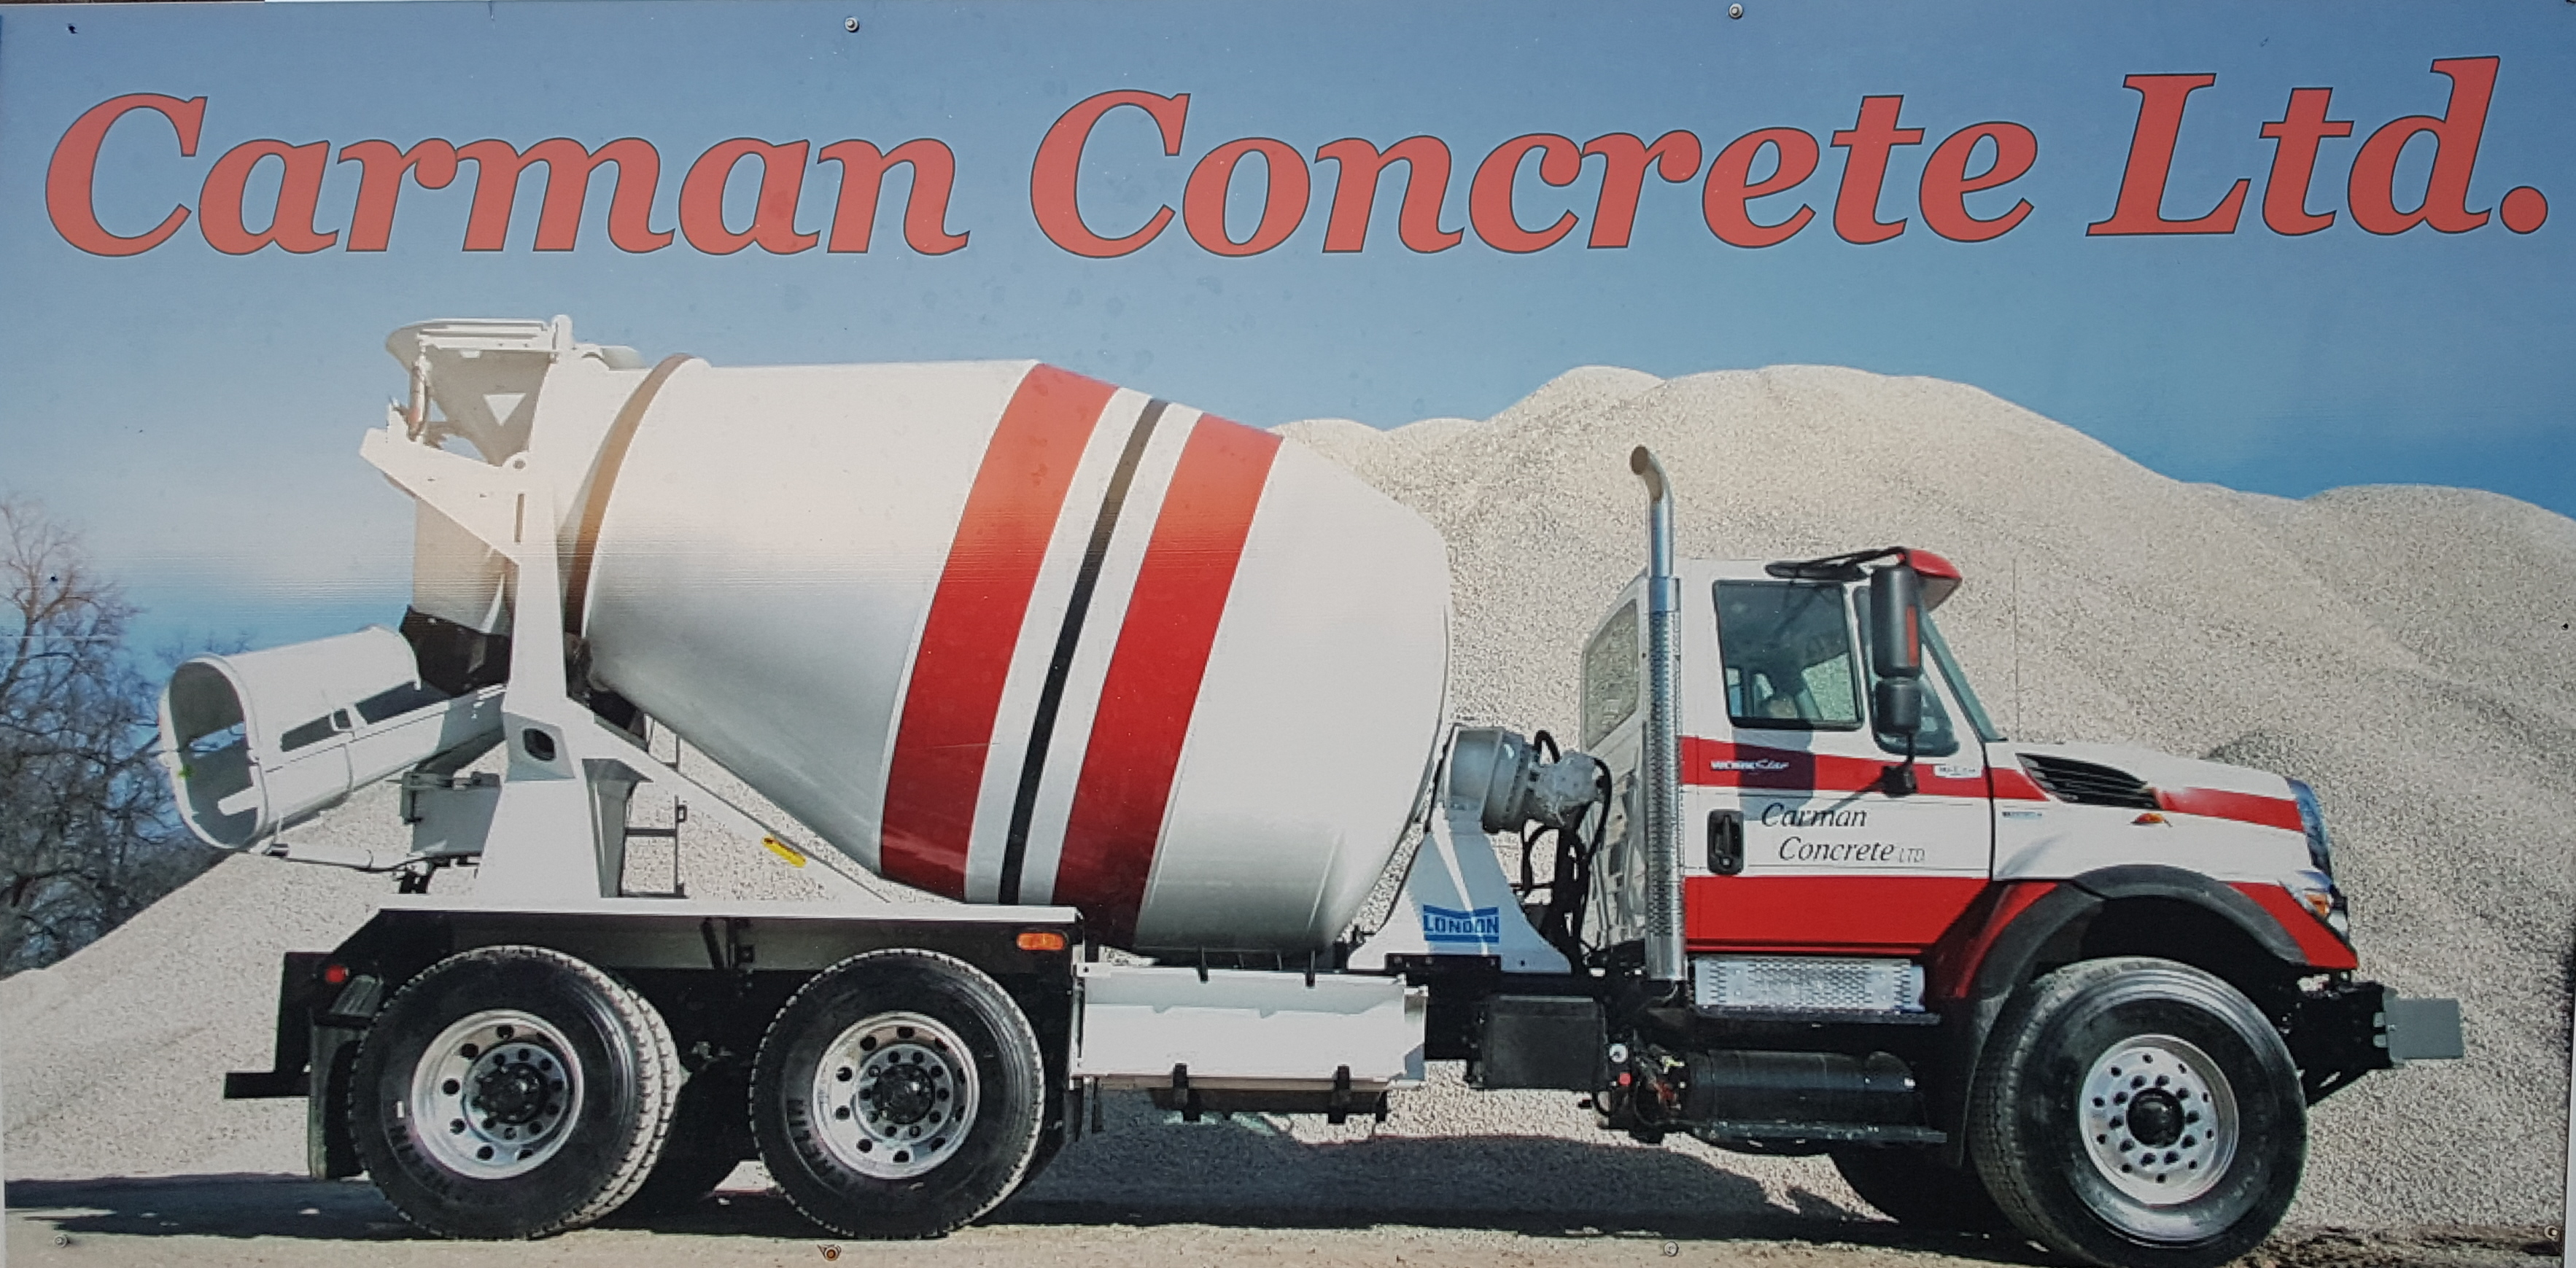 CARMAN CONCRETE